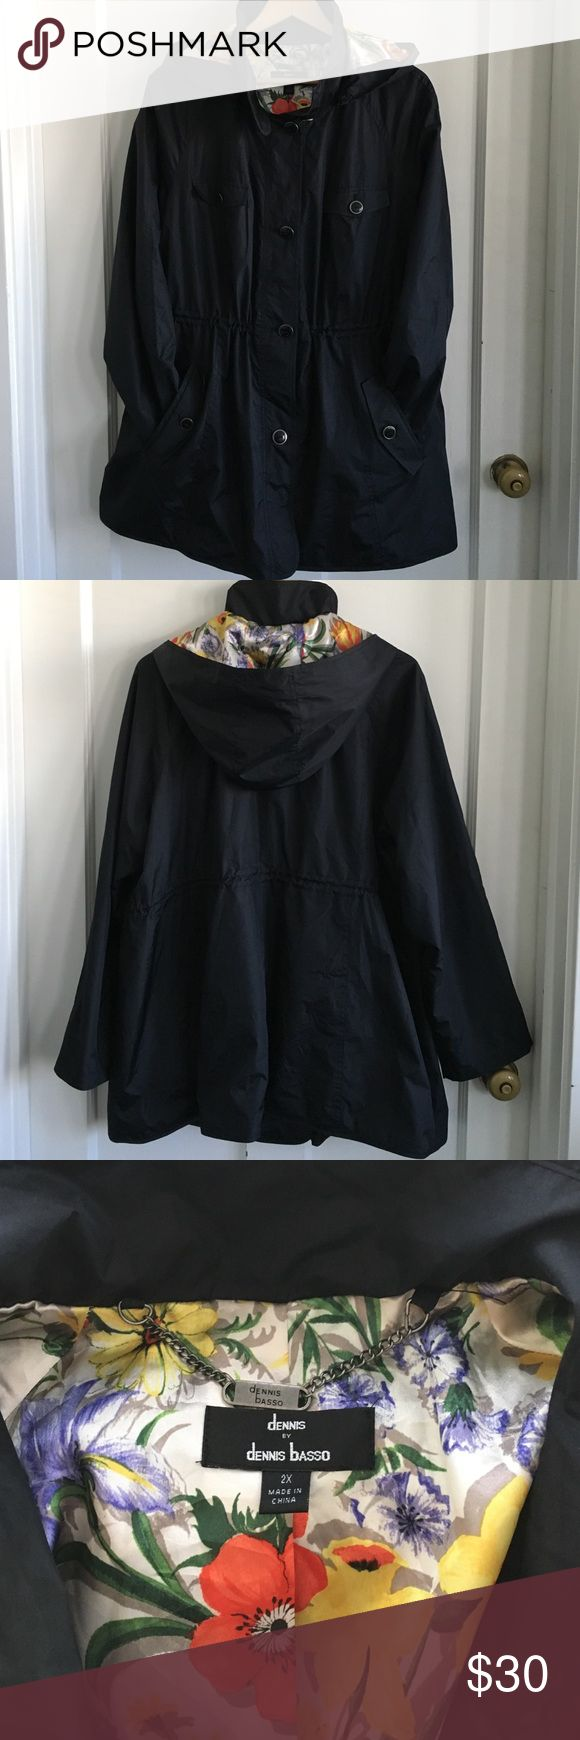 Dennis Basso water resistant Jacket w/ Hood Gently used , no rips, no stains. Black w inner floral print lining. Zip-off hood, button closures, elastic pull-cord at the waist this jacket is great to be out and about. Dennis Basso Jackets & Coats